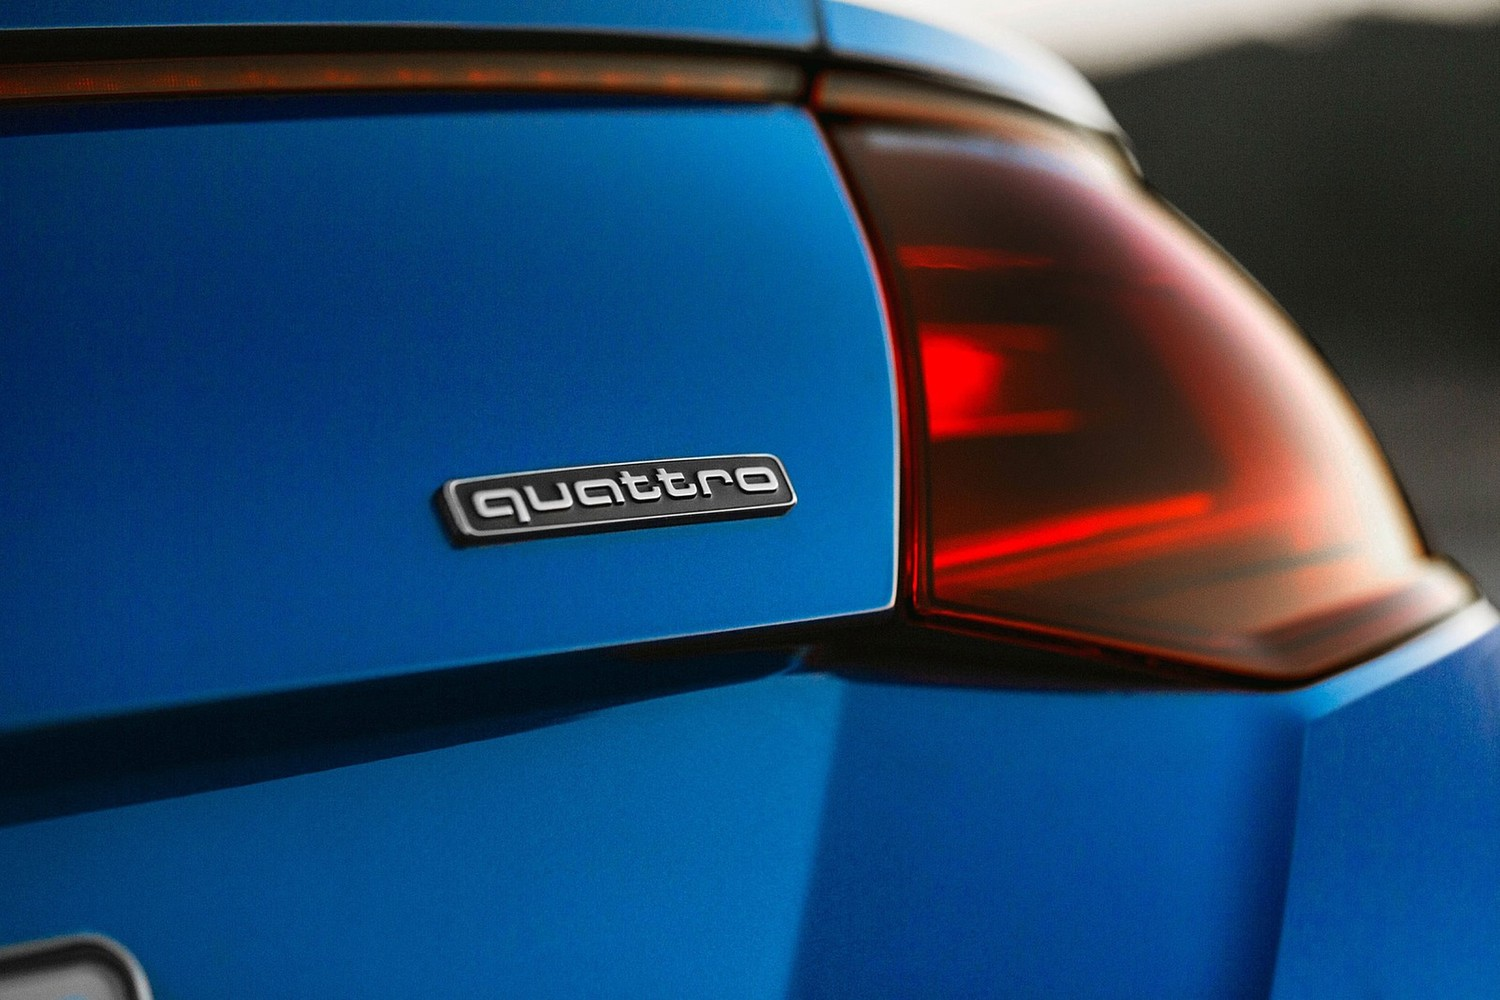 Audi TT 2.0T quattro Coupe Rear Badge (2016 model year shown)